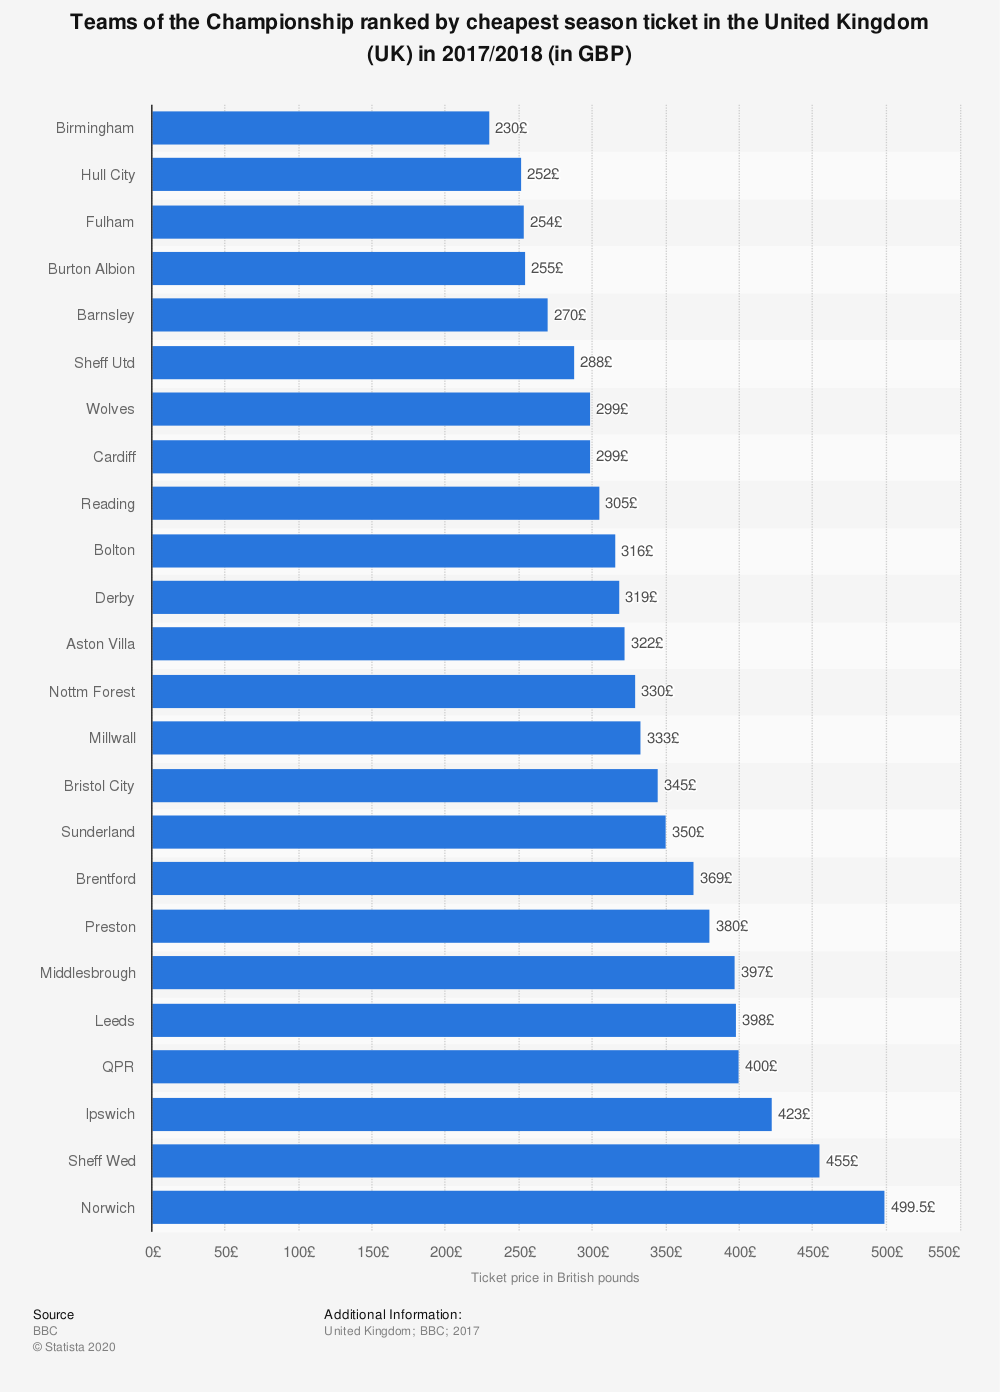 Statistic: Teams of the Championship ranked by cheapest season ticket in the United Kingdom (UK) in 2017/2018 (in GBP) | Statista